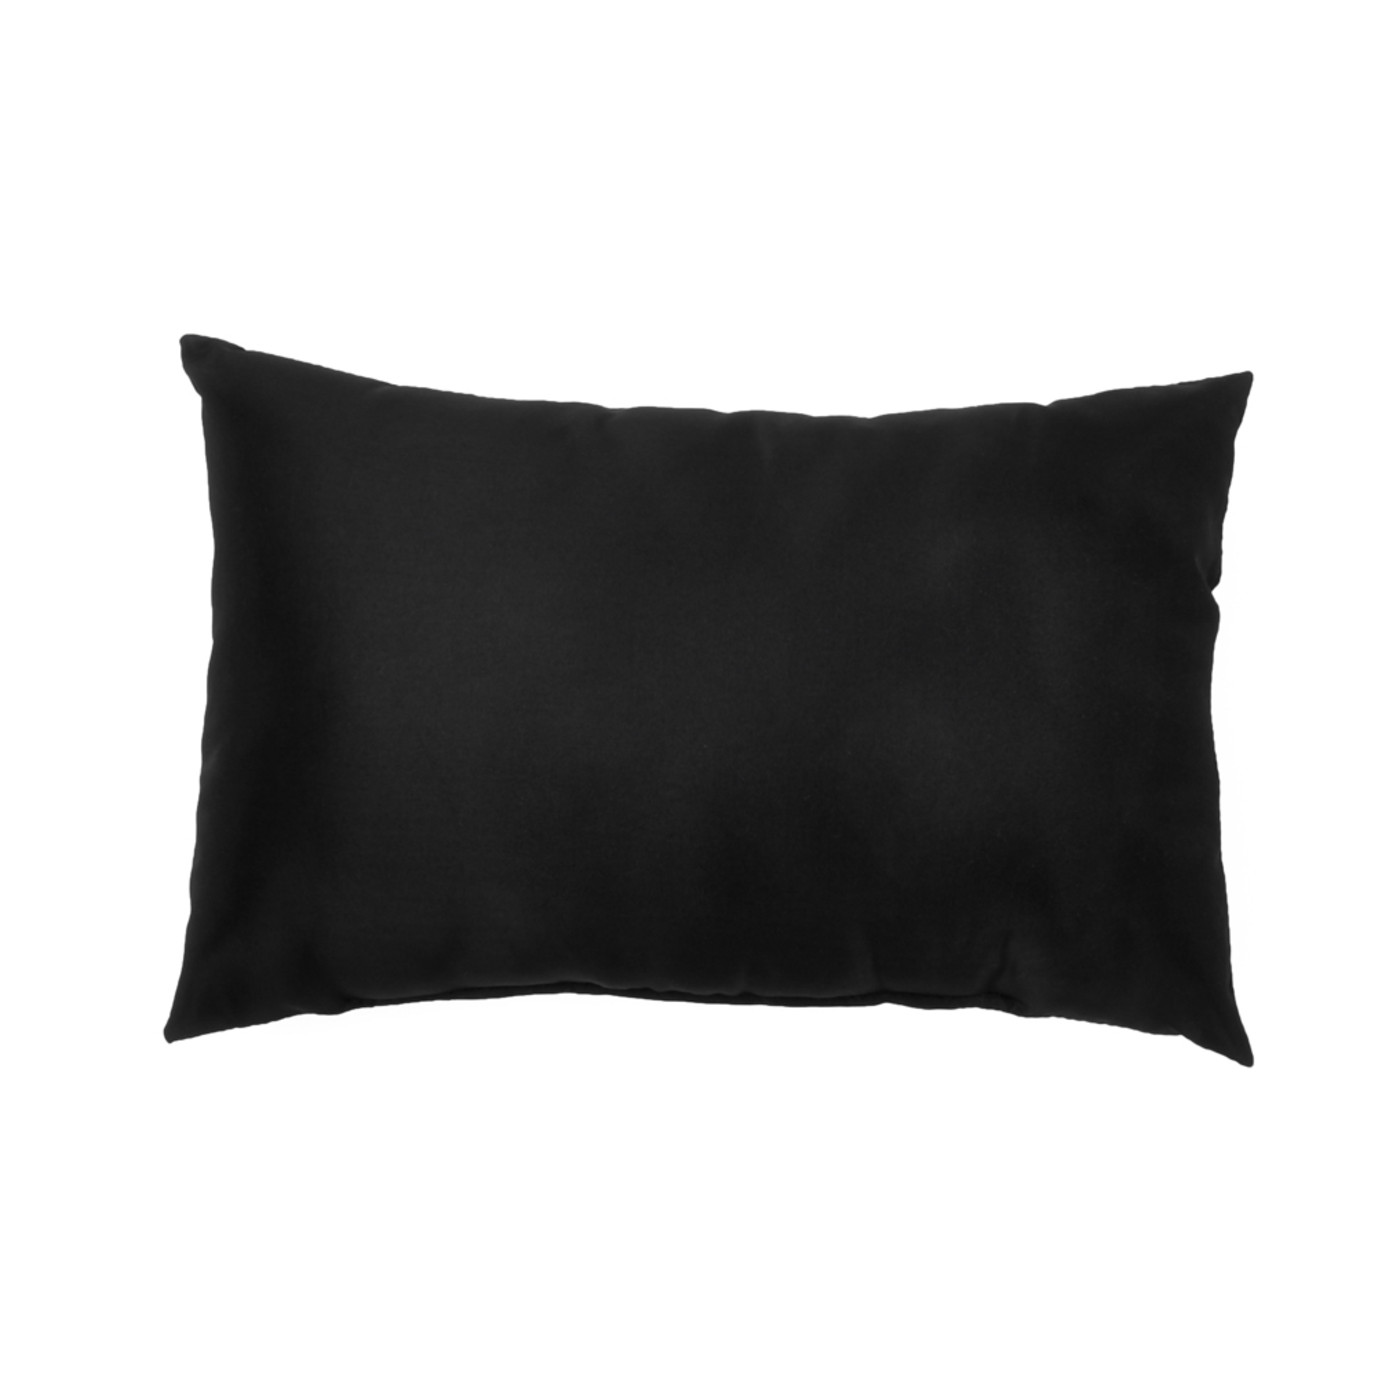 Modular Outdoor Lumbar Accent Pillow